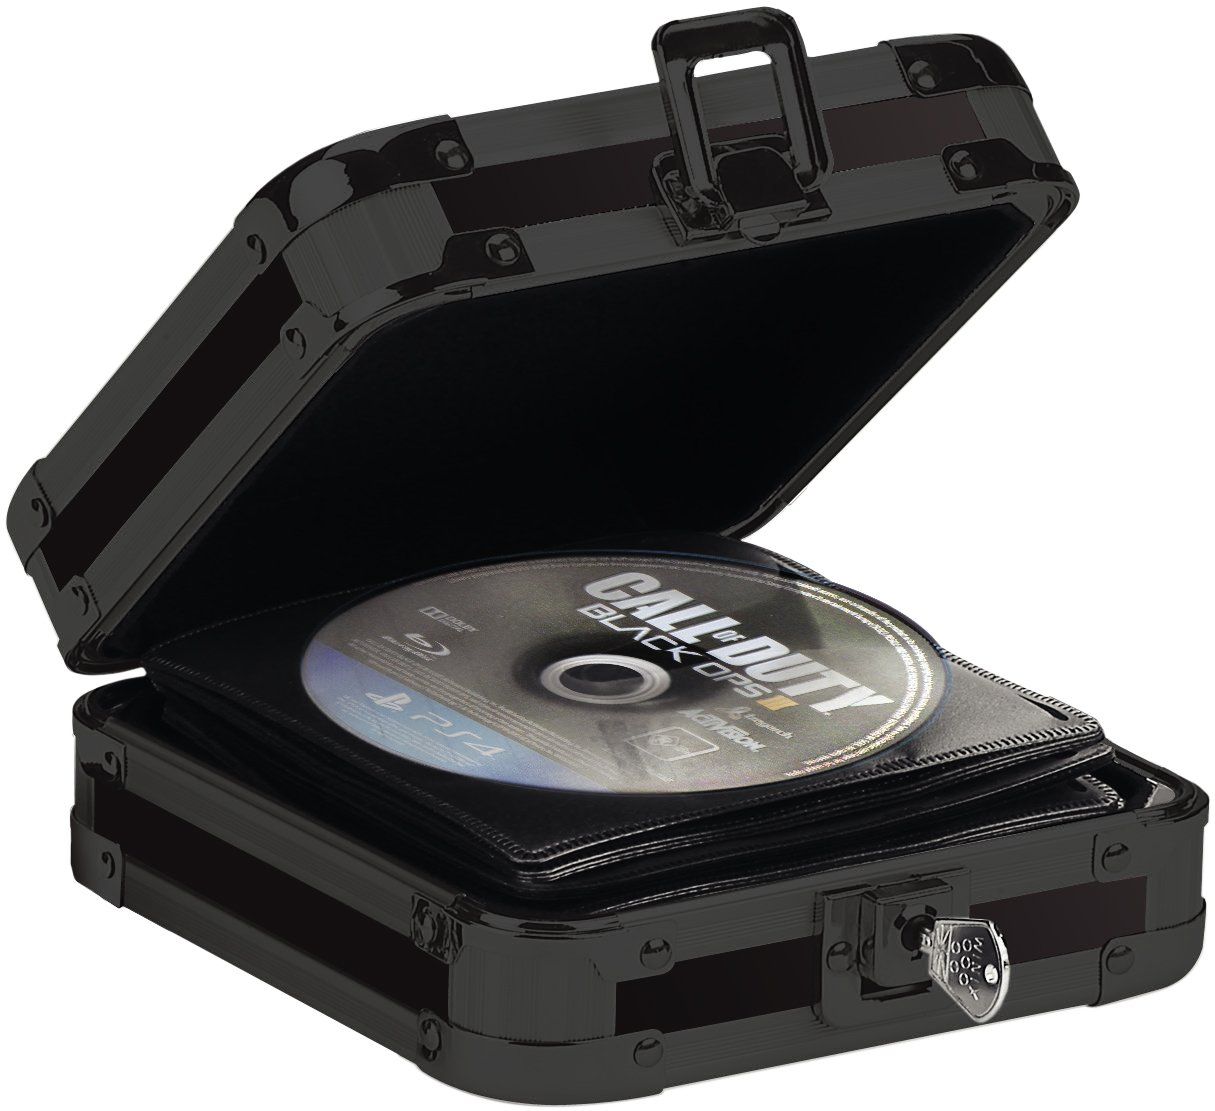 Vaultz Locking CD Wallet, 64 CD Capacity, 3.5 x 13.25 x 7.25 Inches, Black (VZ01149)